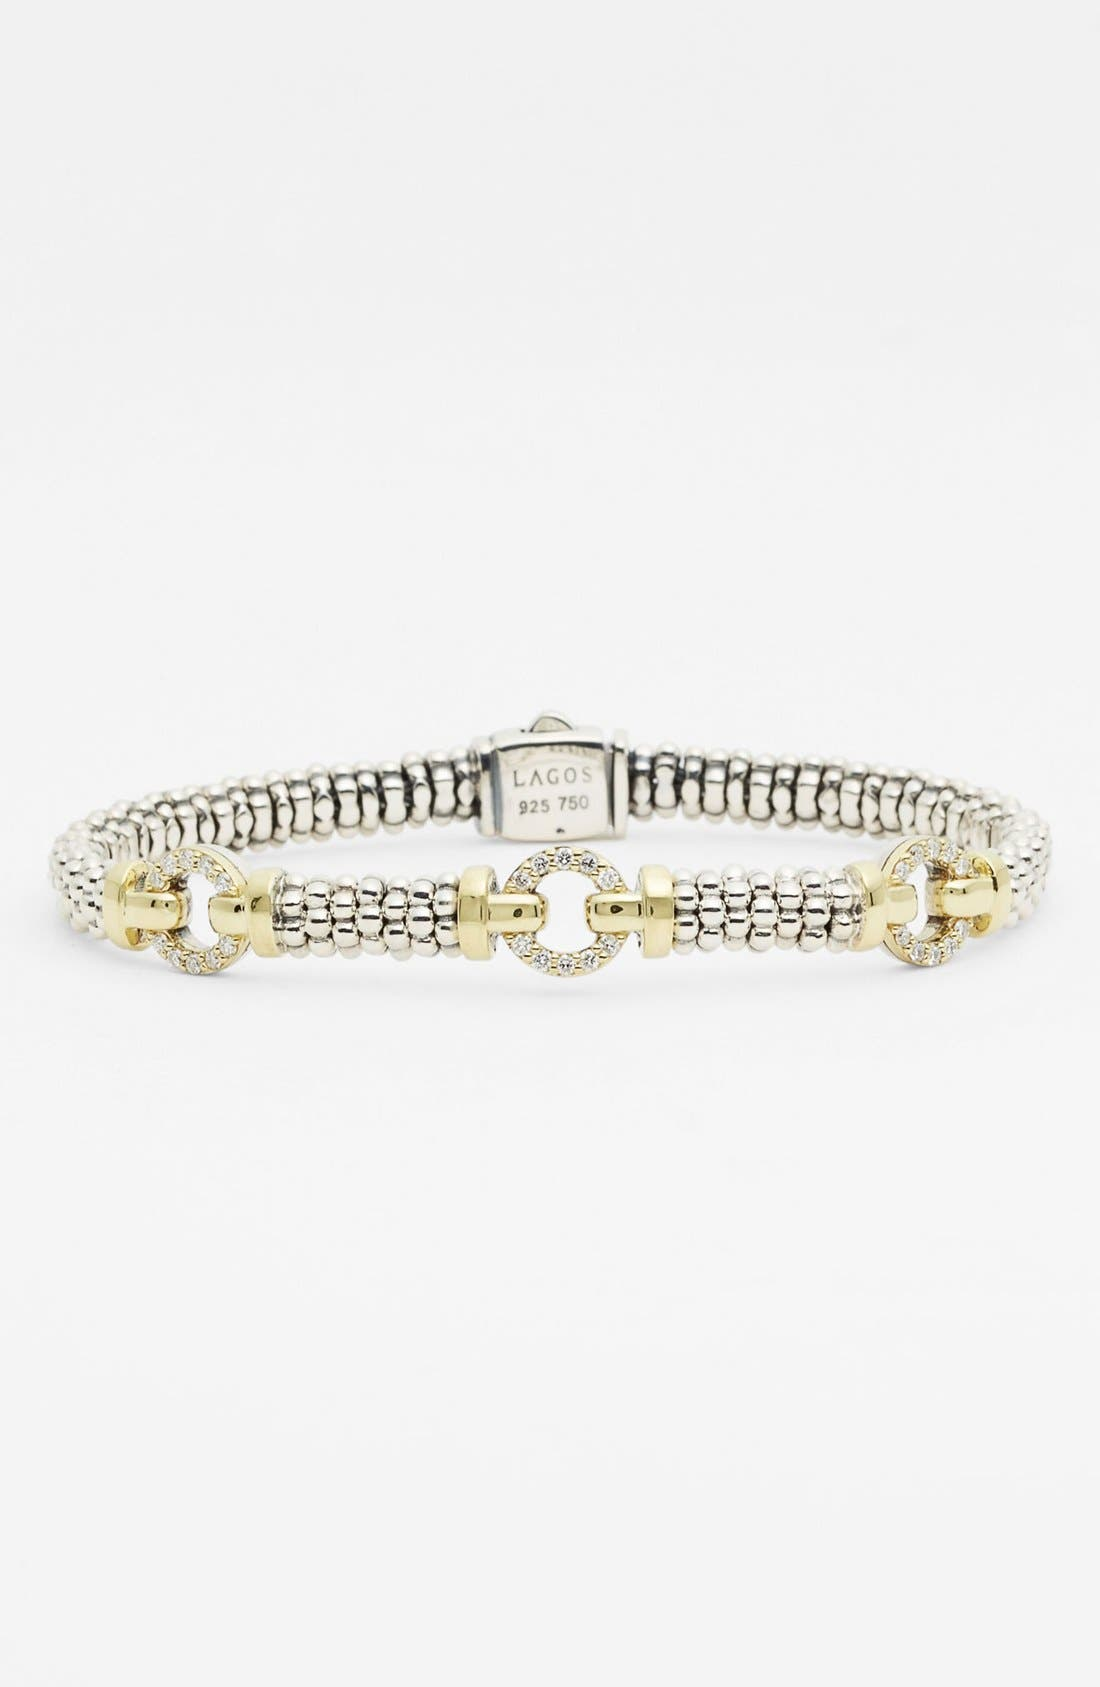 Alternate Image 1 Selected - Lagos Caviar™ Diamond 'O' Bracelet (Online Only)